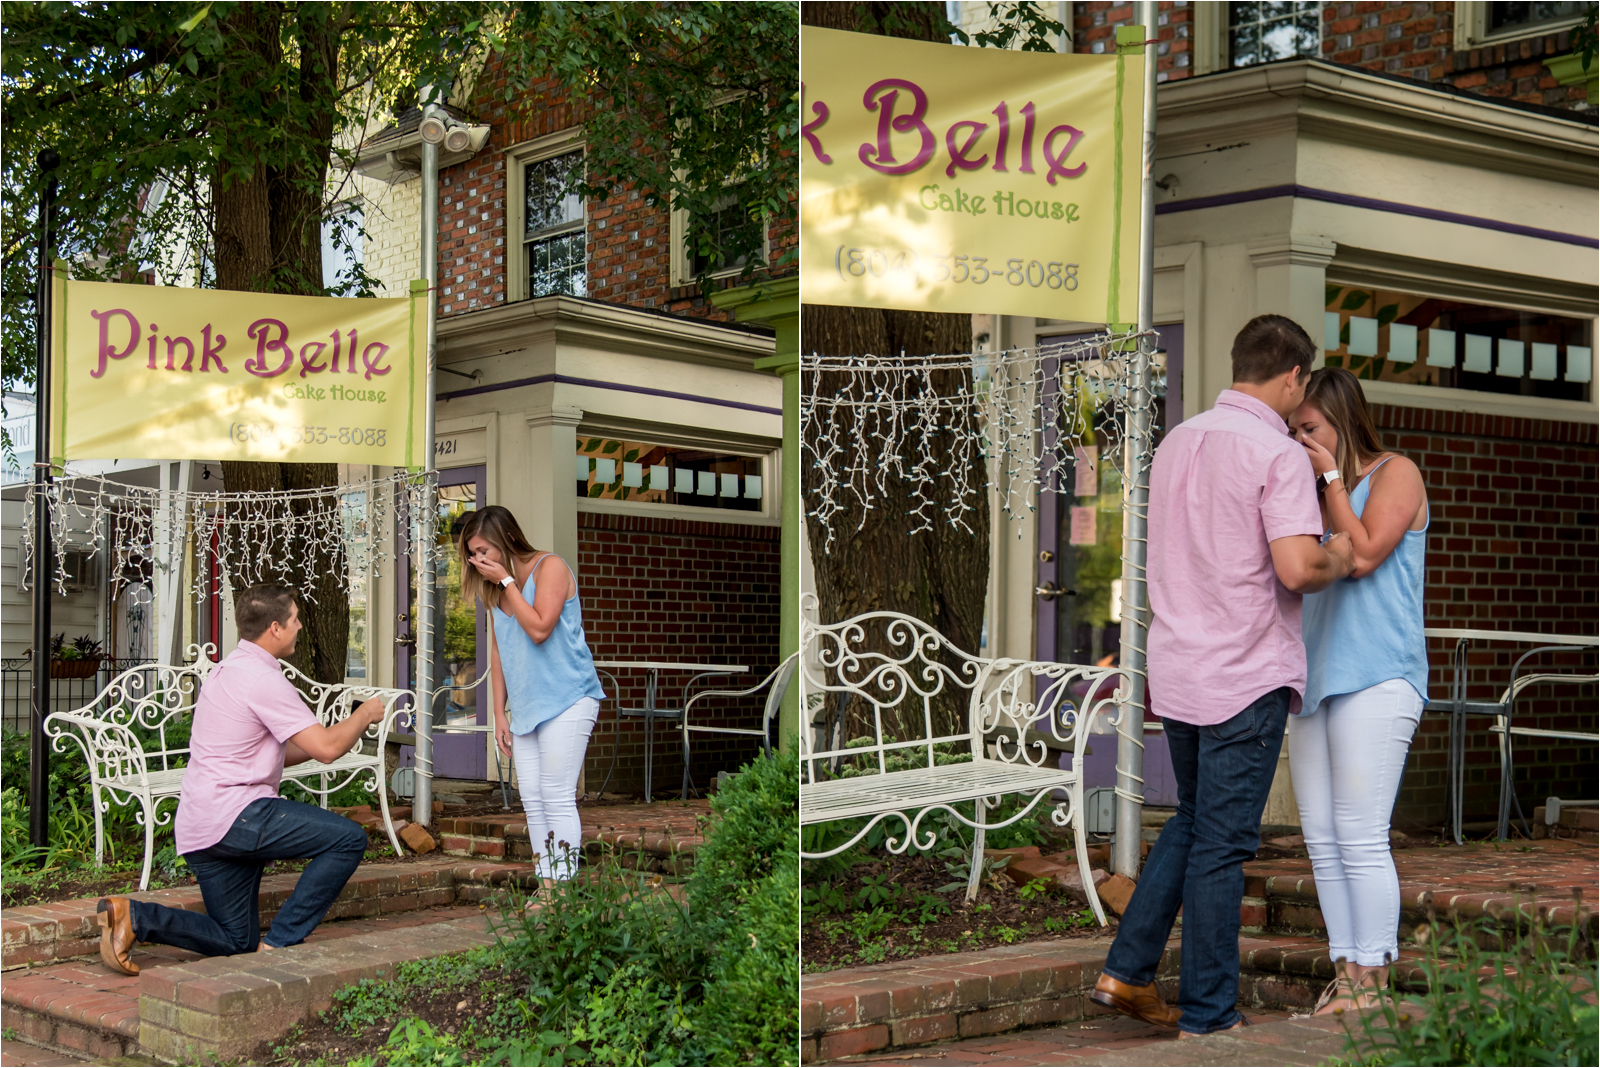 proposal-engagement-photography-carytown-richmond-virginia-rva-fiance-pink-collared-shirt-white-pants-blue-blouse-engagement-ring-focus-on-joy-photography